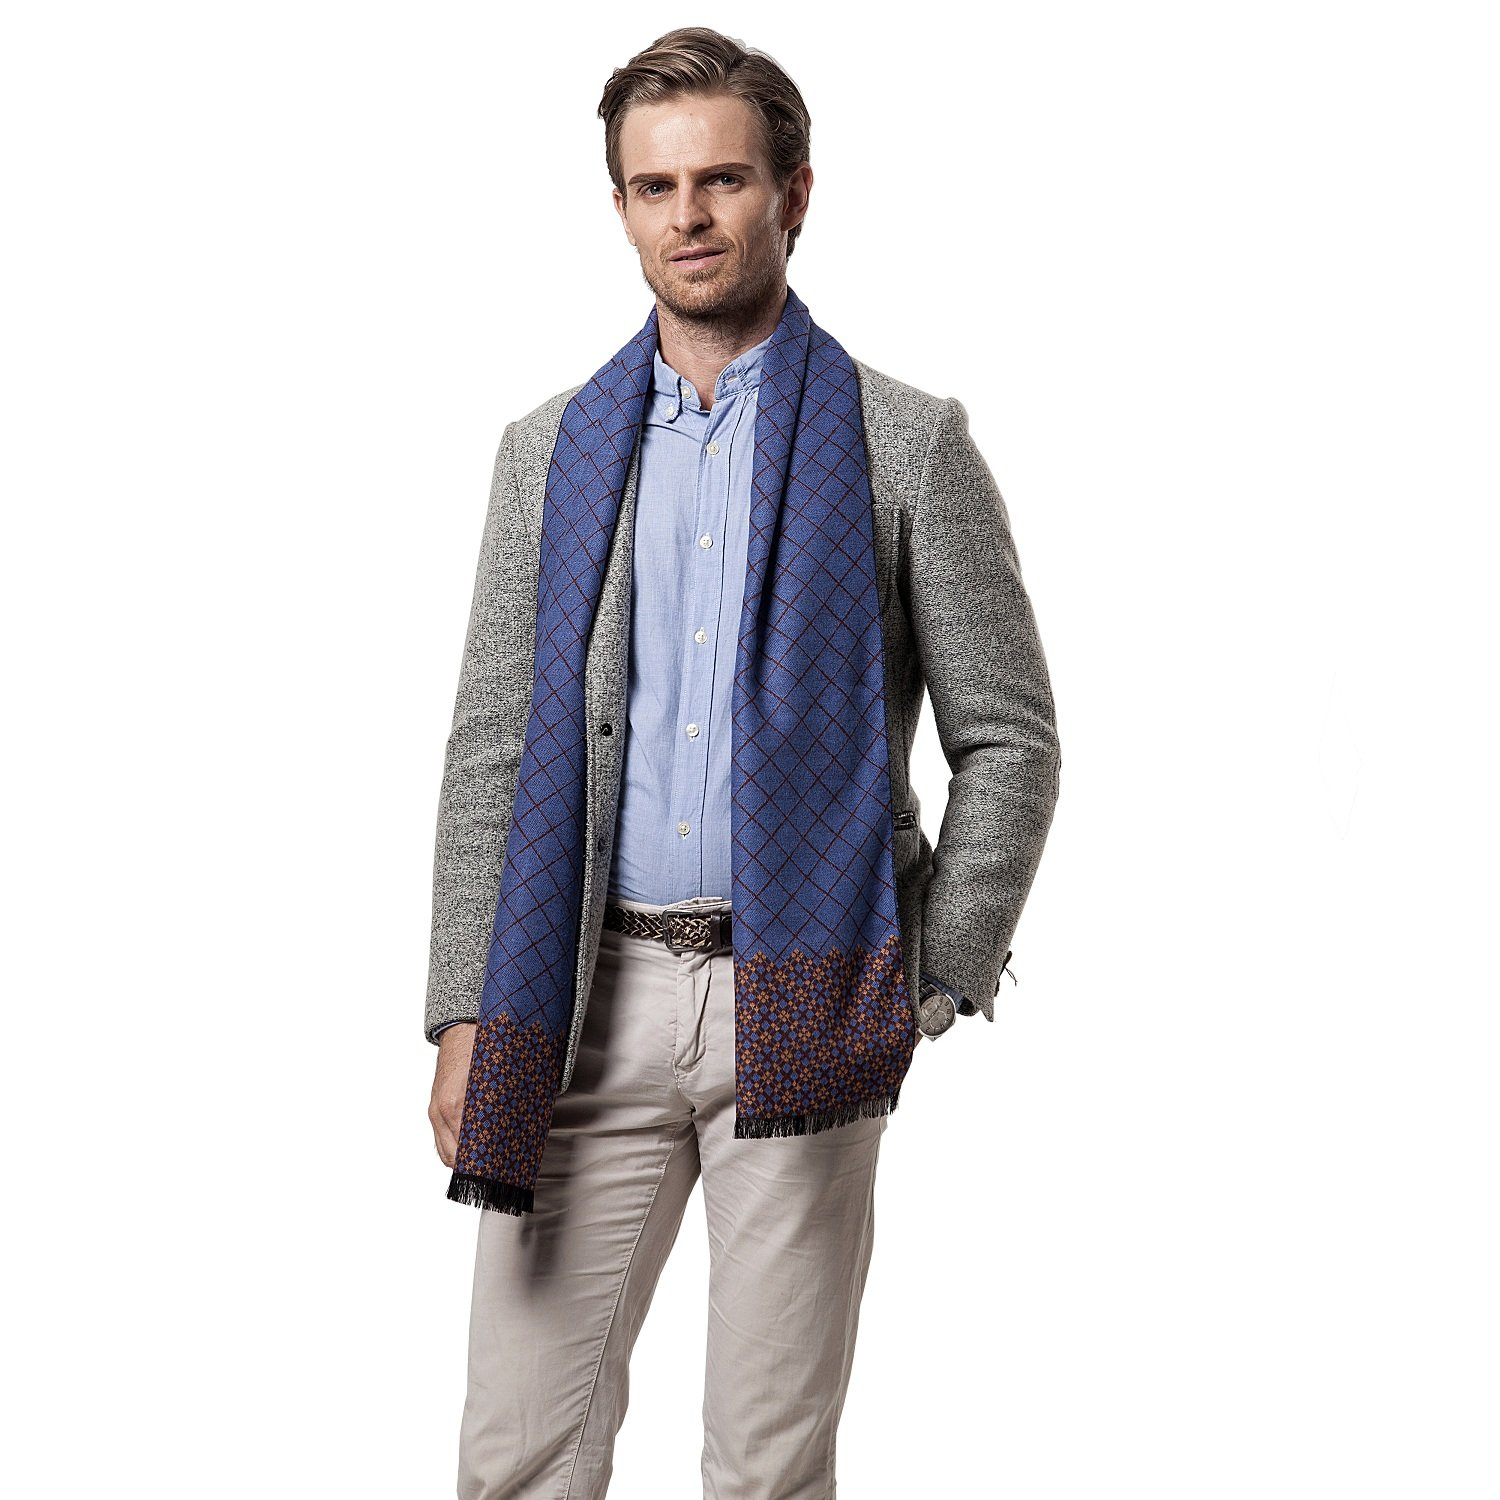 Scarf for Men, Leisofter Men's Cashmere Scarf Classic Houndstooth Plaid Leisure Business Neckerchief, (Blue)